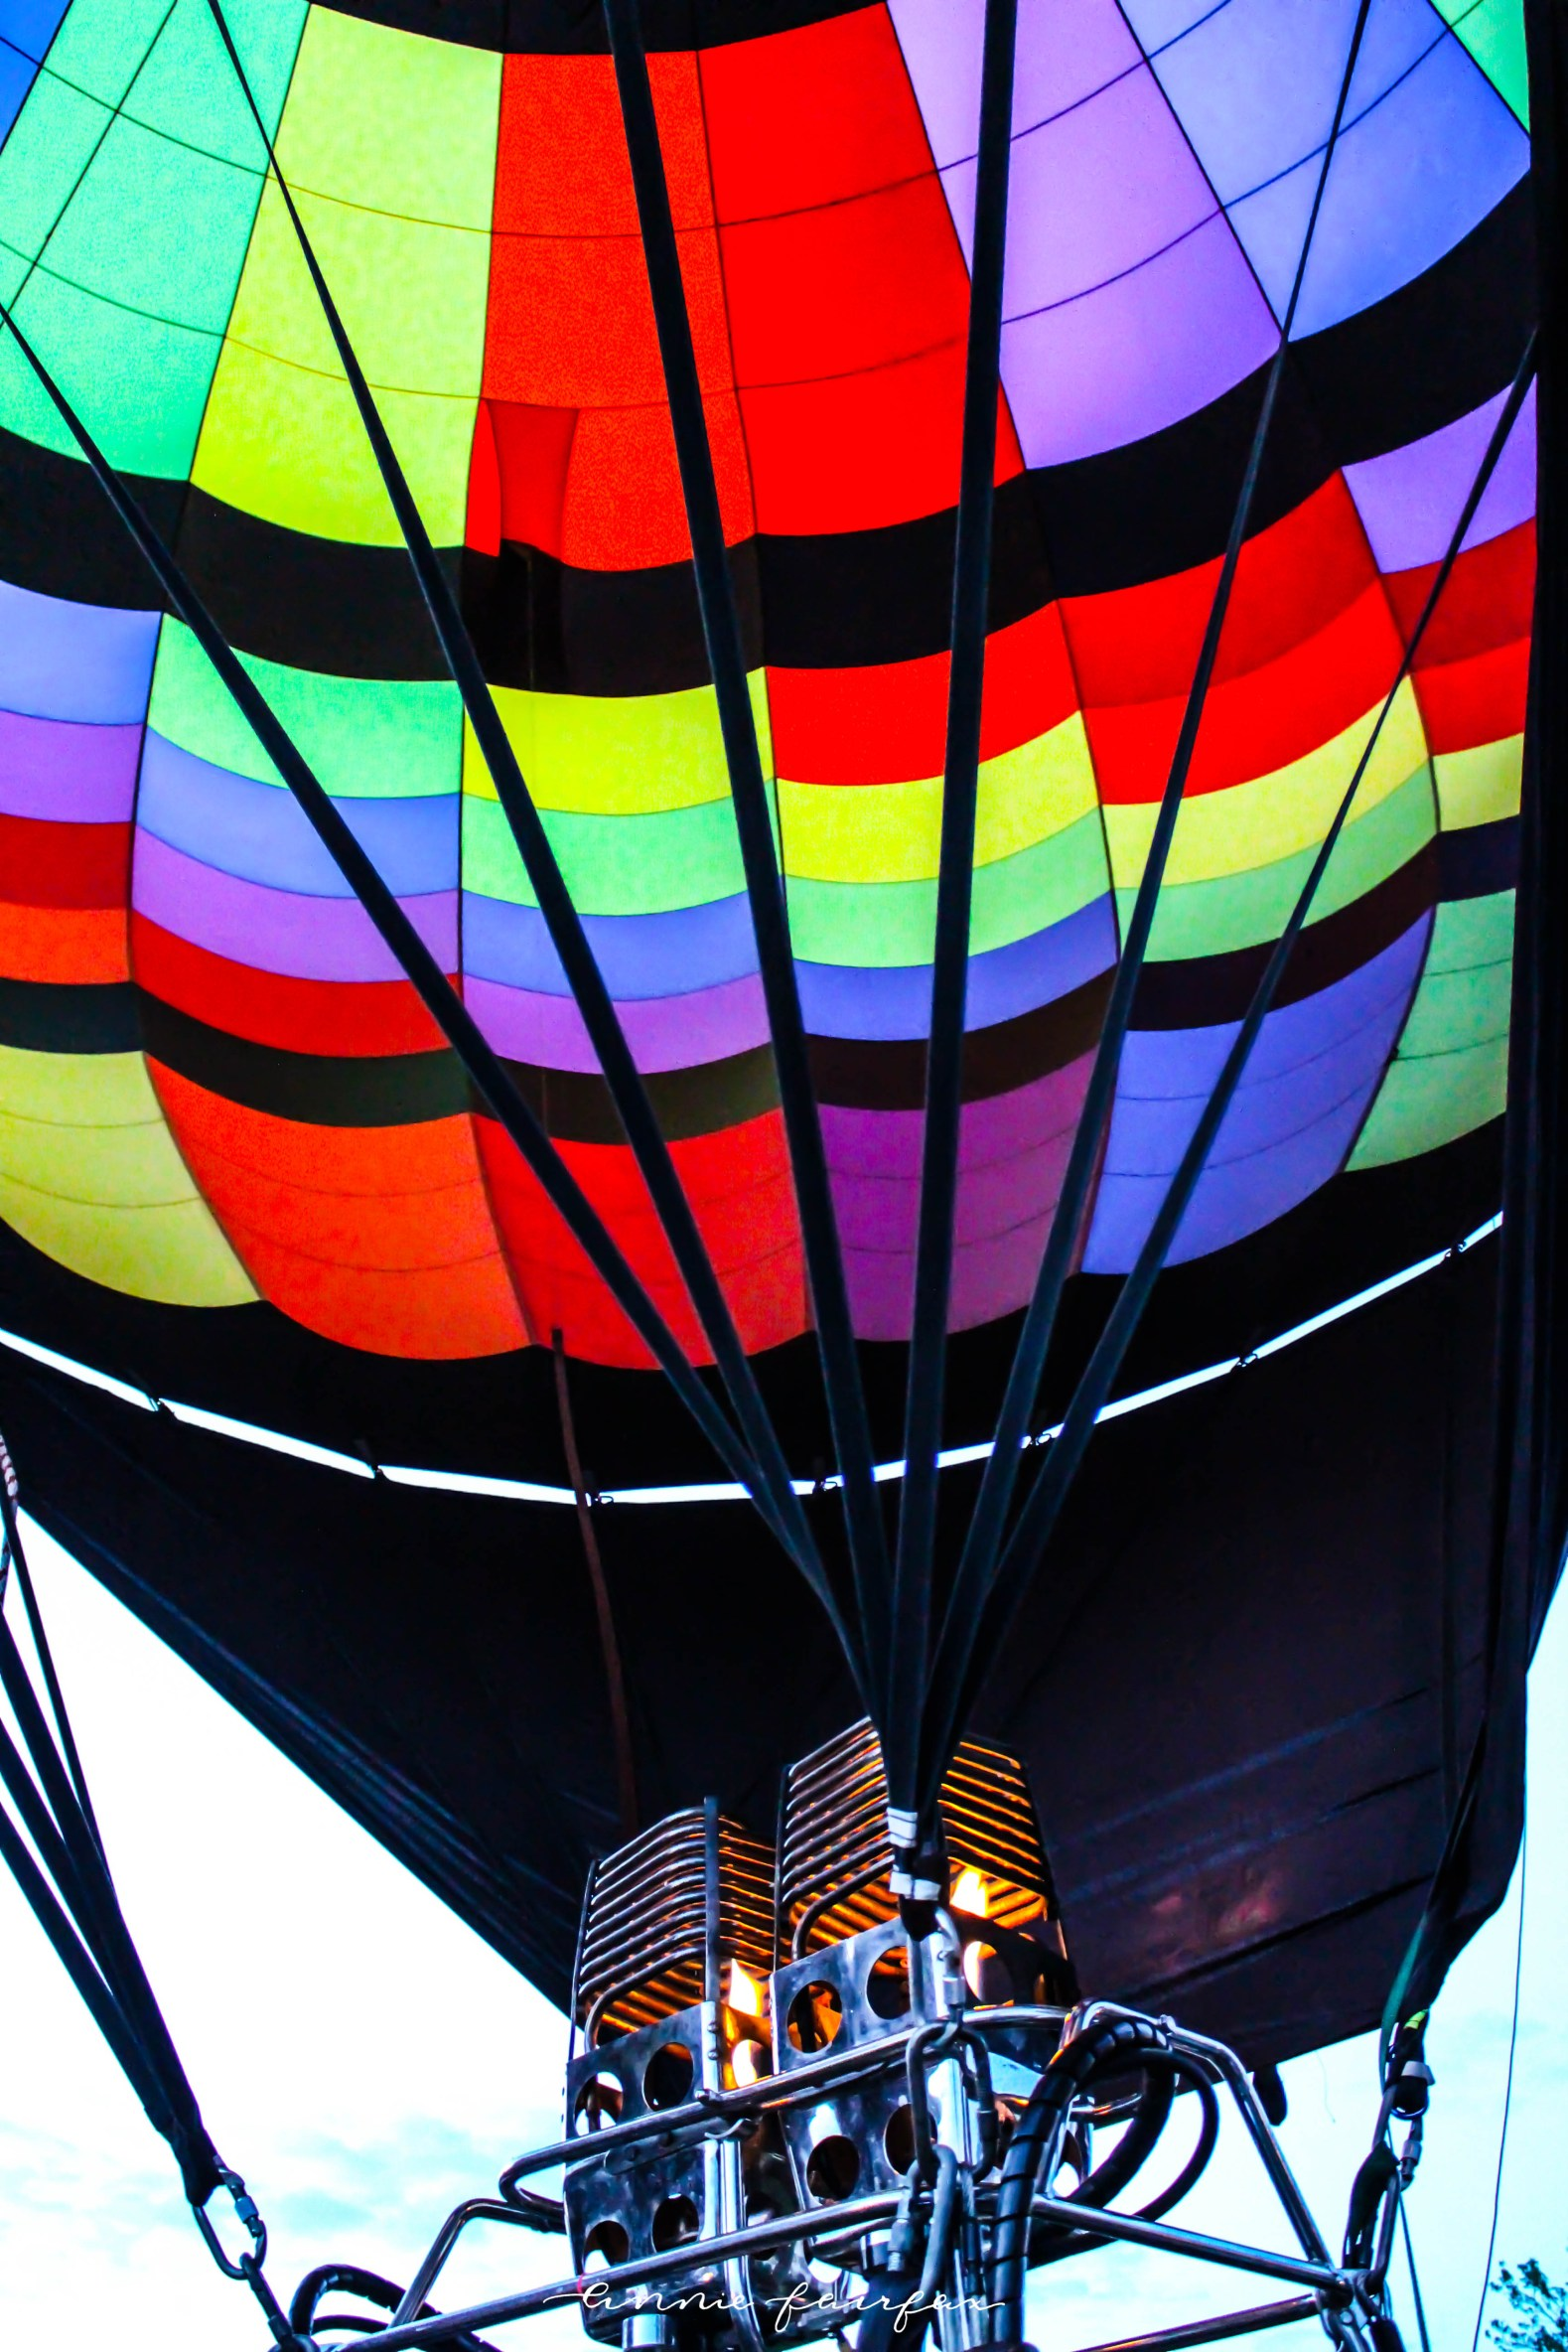 Hot Air Balloons Balloons Over Bavaria